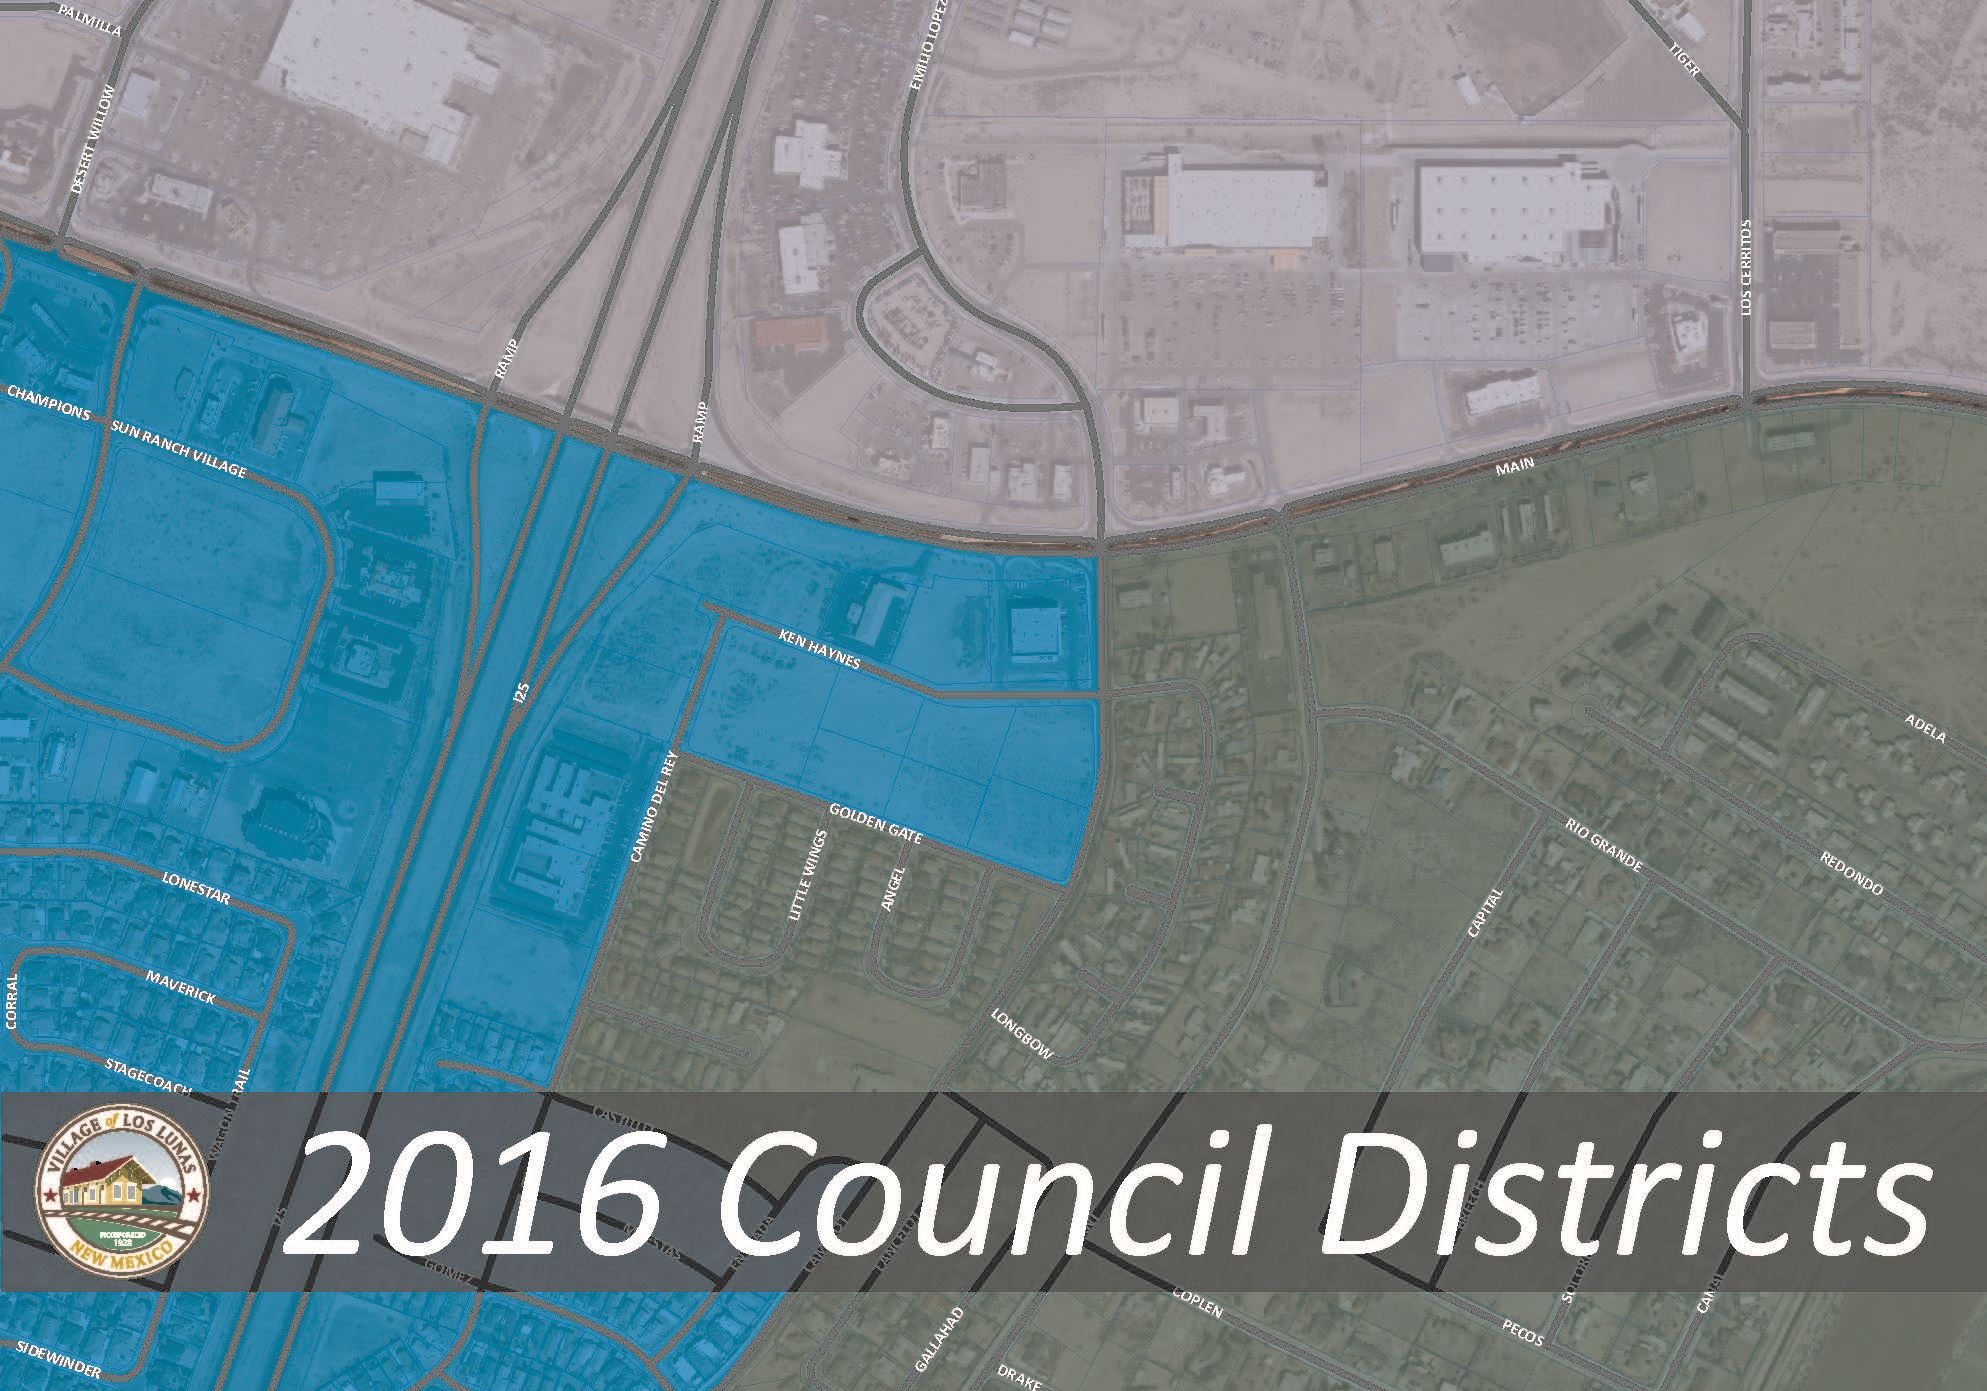 2016 Council Districts Updated